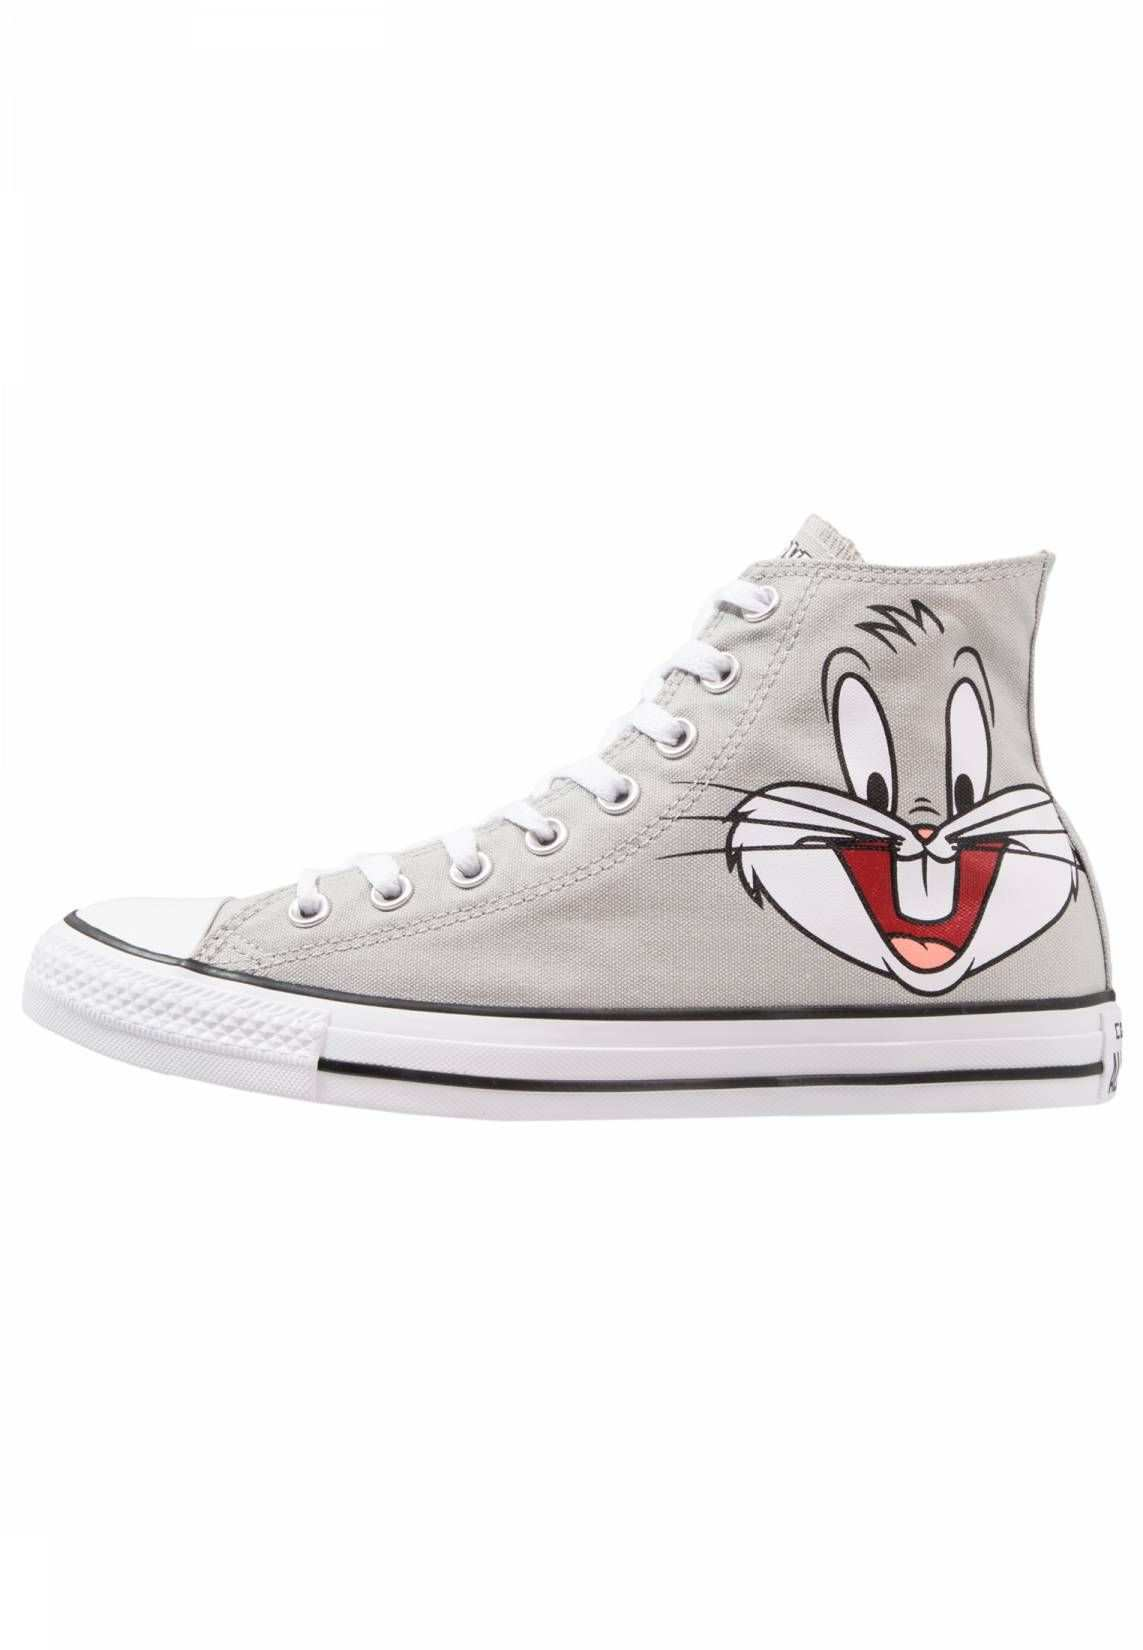 Converse Chuck Tailor All Star Hi Sneaker High Looney Tunes Bugs Bunny Sohle Kunststoff Decksohle Textil Innenmaterial Converse Sneaker High Sneaker